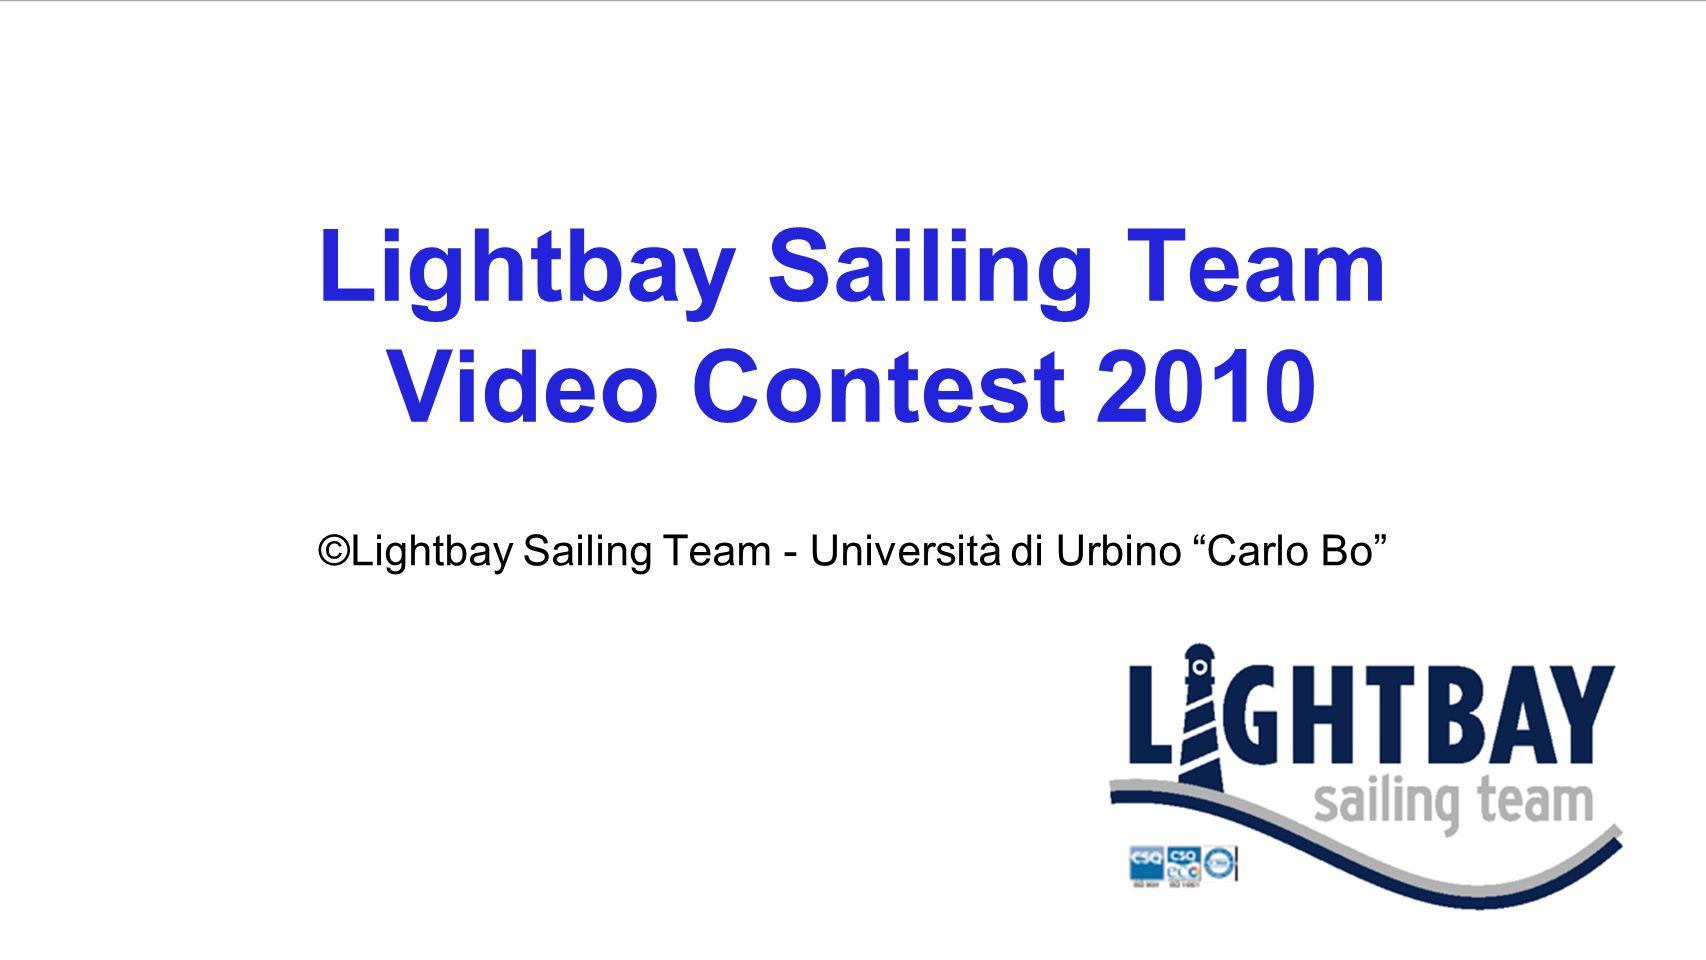 Lightbay Sailing Team Video Contest 2010 ©Lightbay Sailing Team - Università di Urbino Carlo Bo